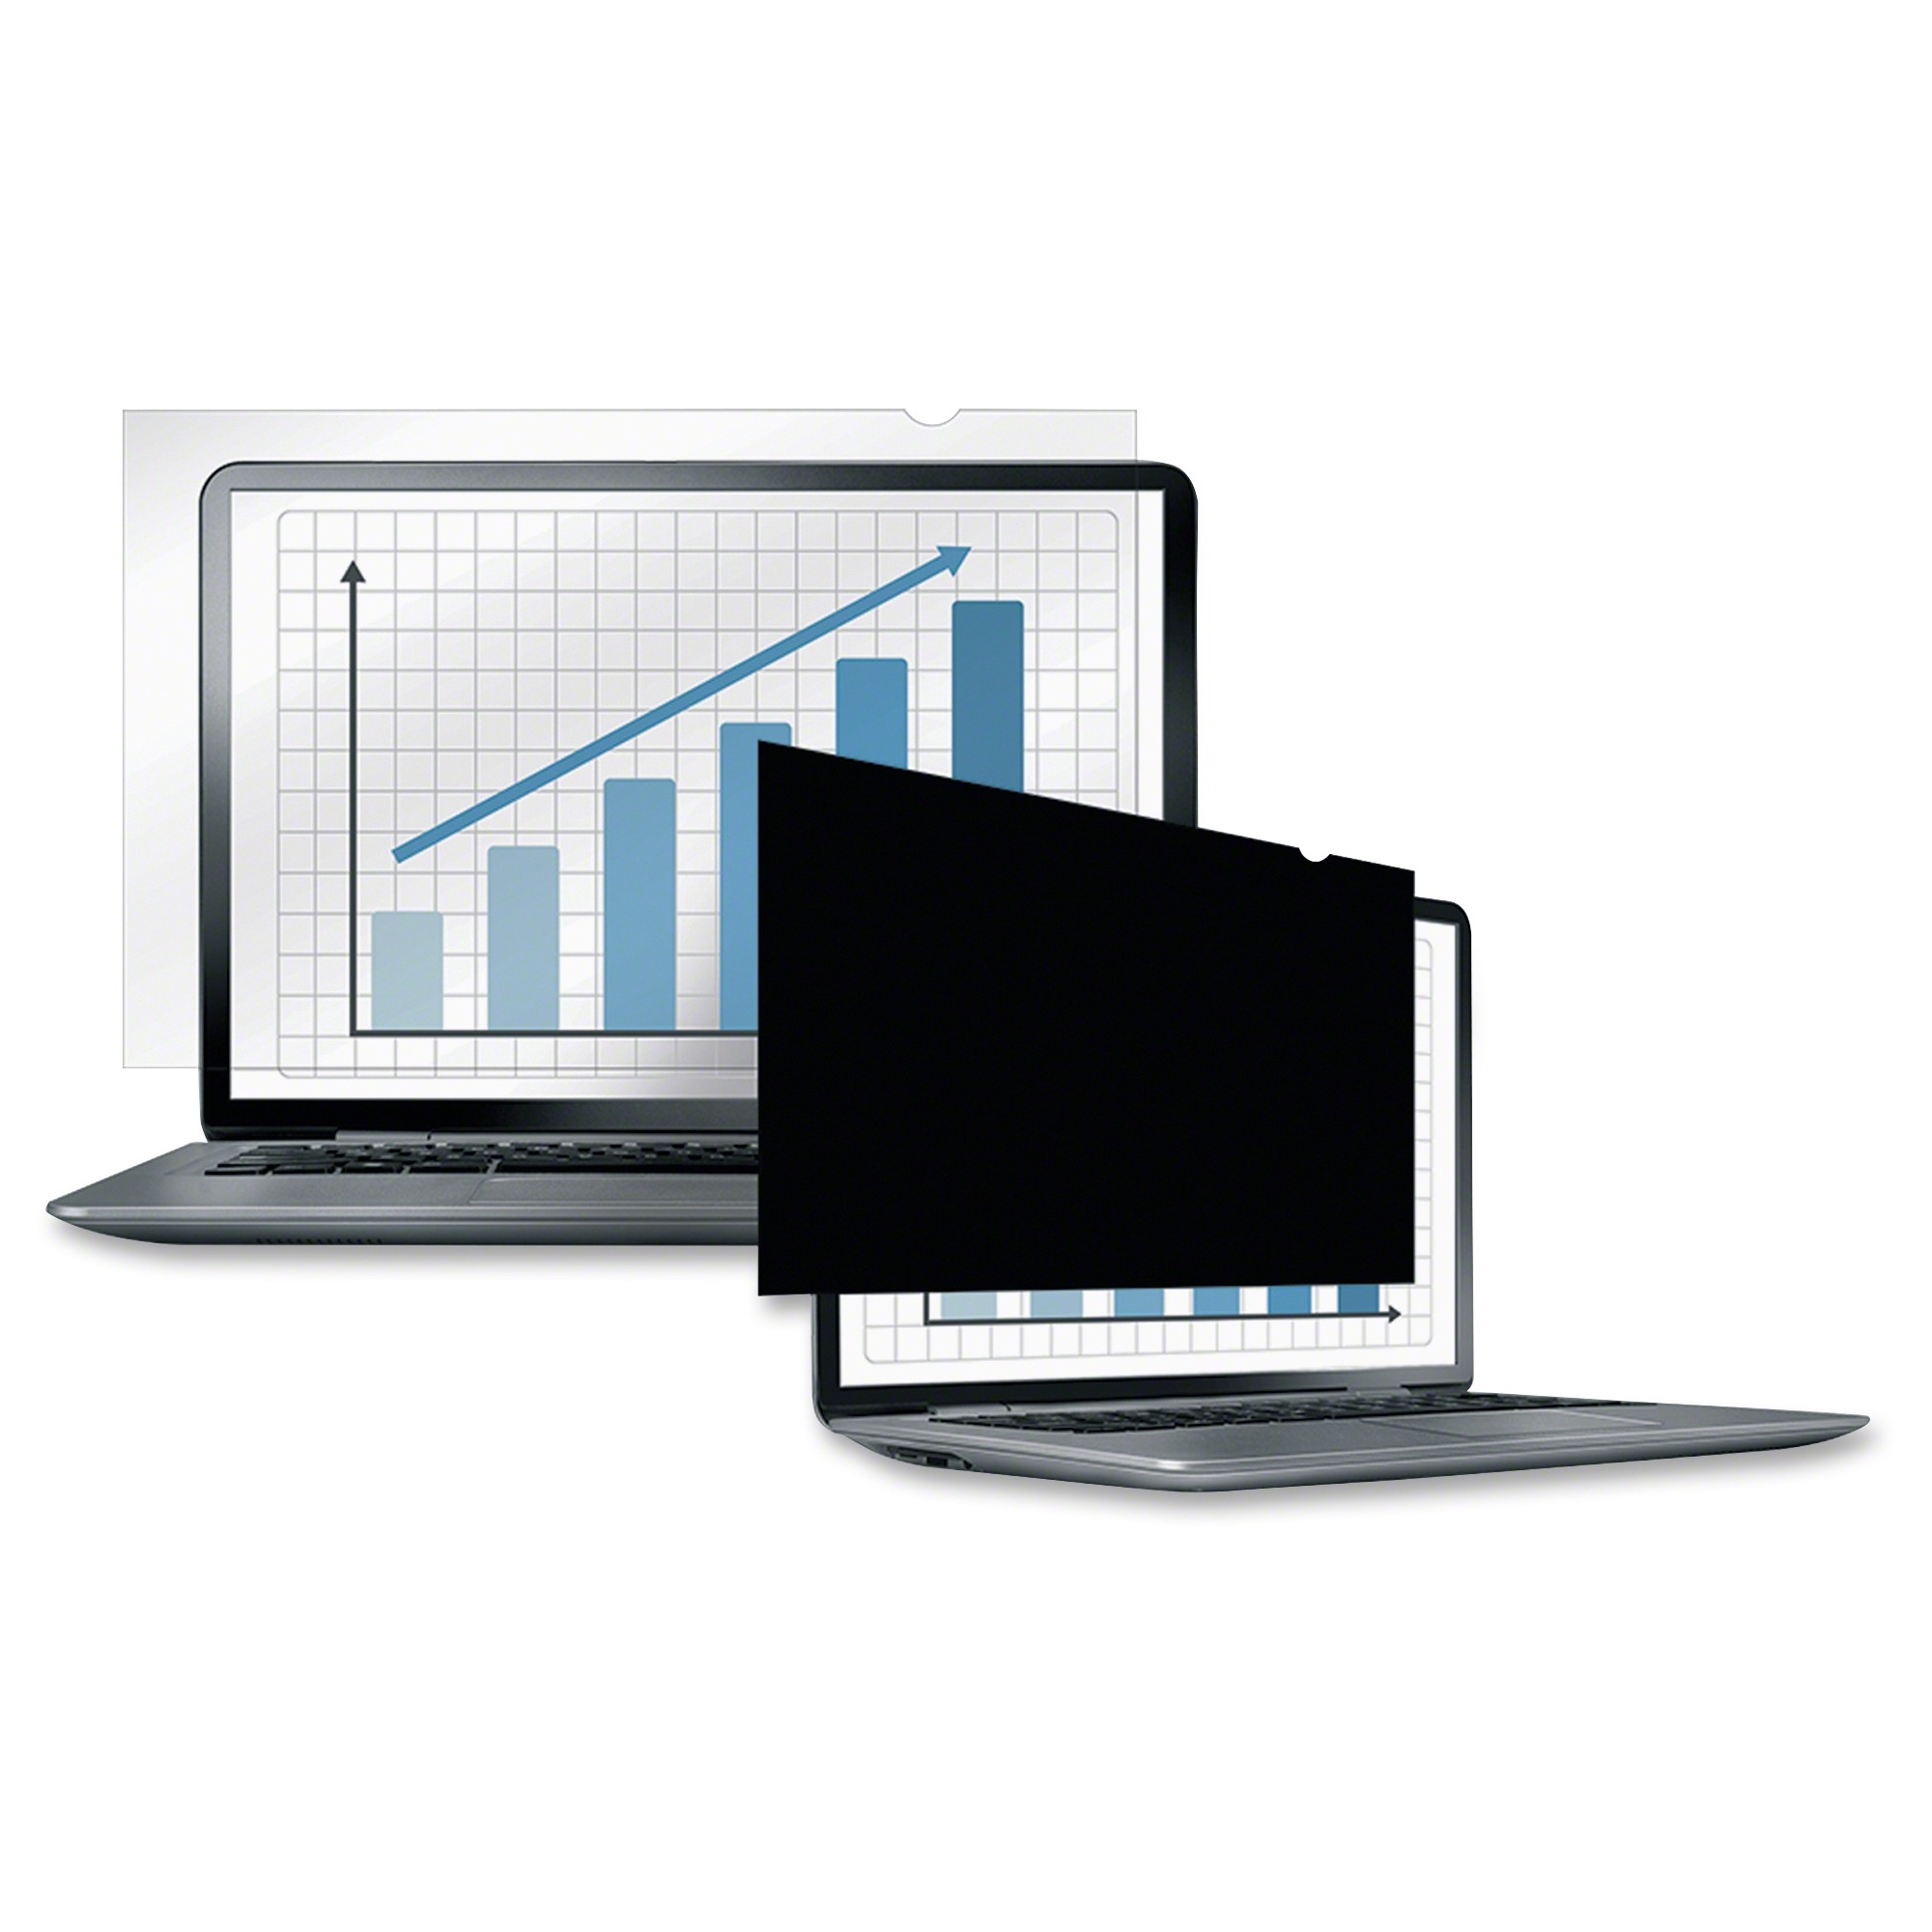 Laptop/Flat Panel Privacy Filter - 17.0 inch Wide Black - 17 inch LCD Notebook Monitor